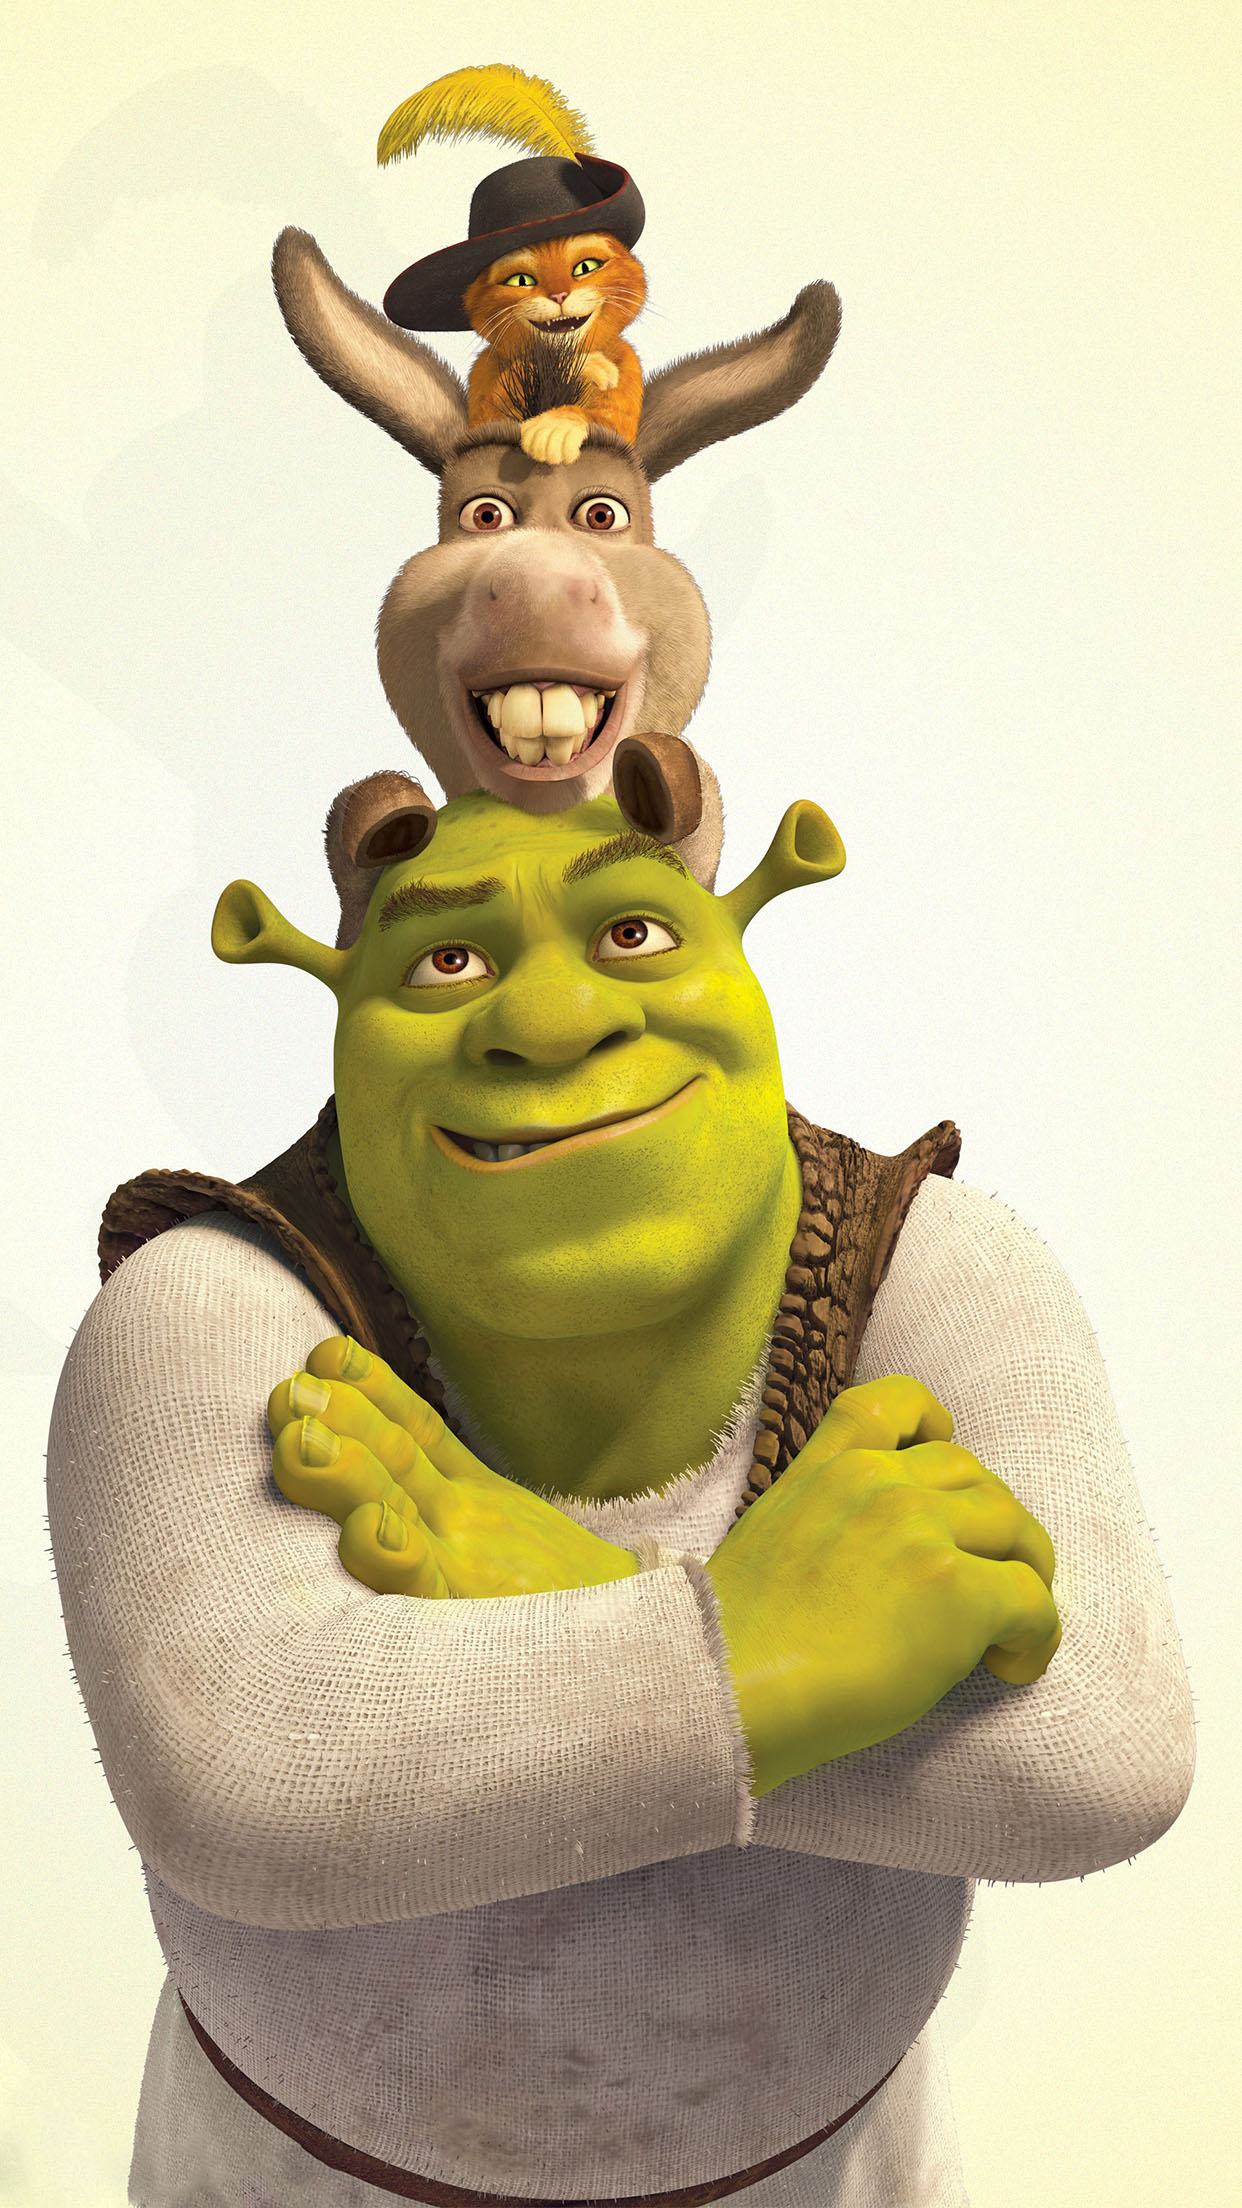 Shrek Donkey And Puss In Boots Wallpaper For Iphone X 8 7